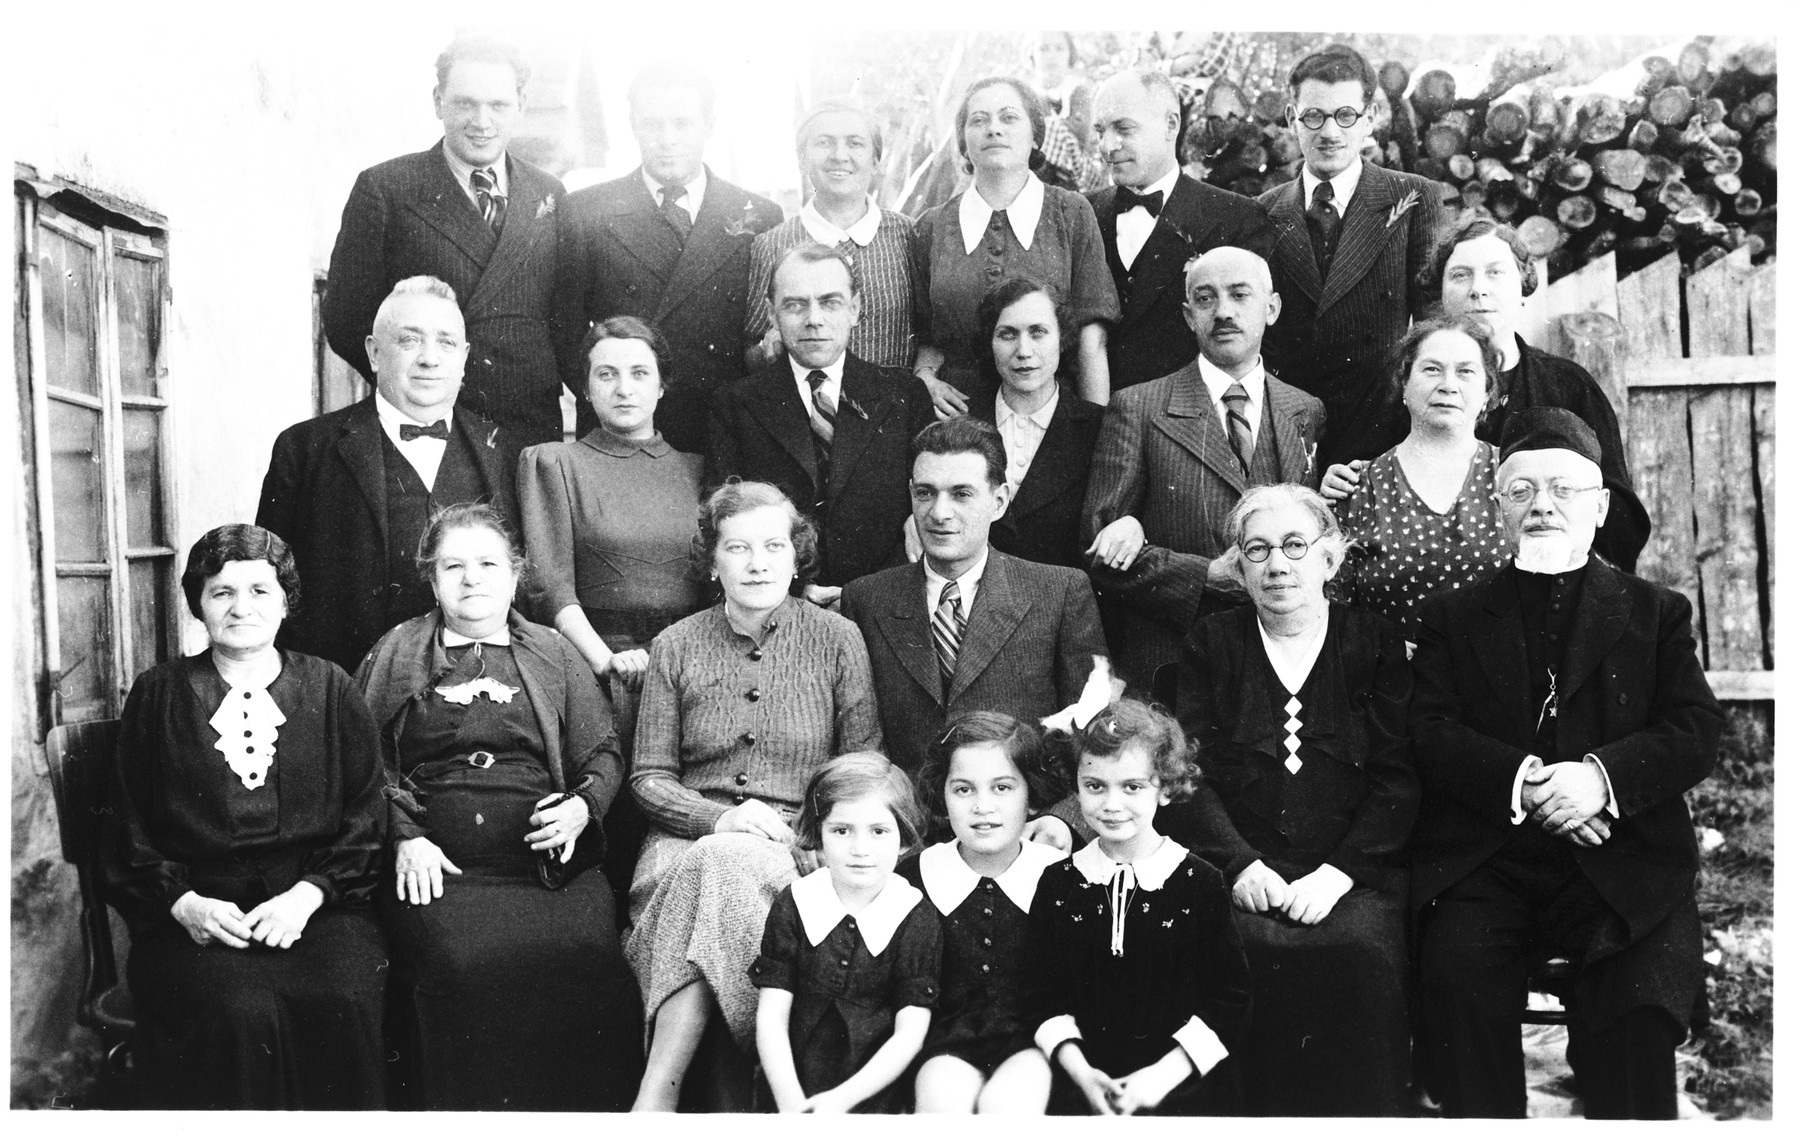 Group portrait of family members at the wedding of the Jewish couple, Silva Deutsch and Salamon Basch.  Pictured in the front row from left to right are: Vera Apler, Zdenka Apler and Edita Deutsch.  Second row: Charlotte Basch, unknown, Silva Deutsch, Salamon Basch, Katarina Deutsch and Rabbi Leopold Deutsch.  Third row: unknown, Loni Basch, Ljudevit (Ludva) Vrancic, Irma Deutsch, Erne Deutsch and unknown.  Top row: Arnold Basch, Joszi Basch, Giza Deutsch, Blanka Apler, Rudy Apler and Bernard Basch.